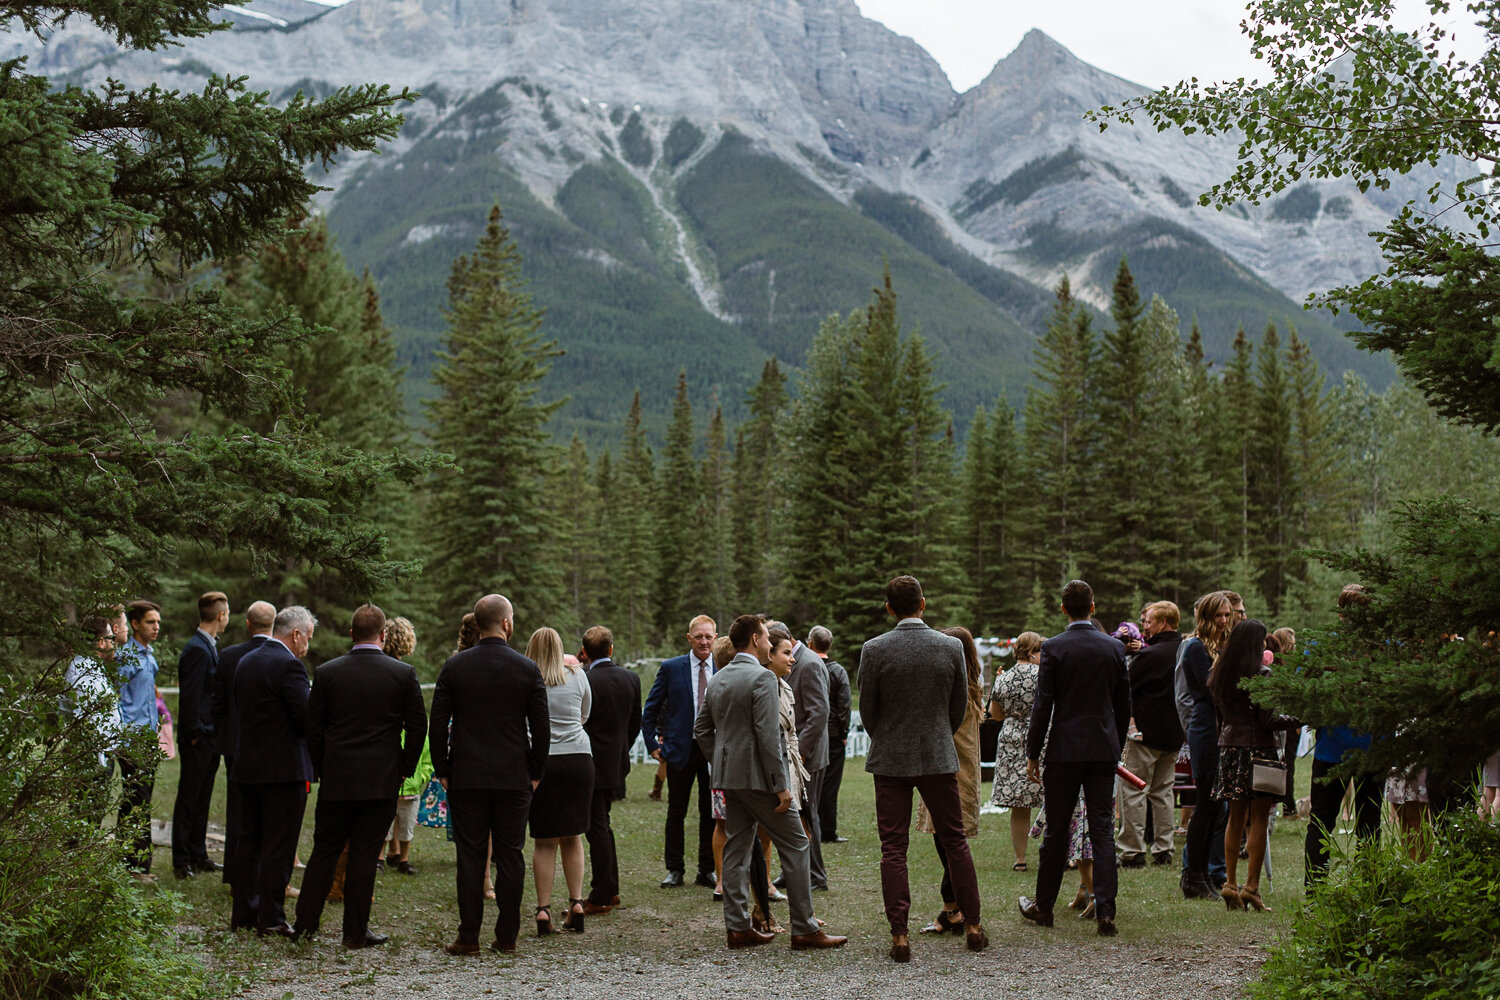 48-Canmore-Alberta-Real-Wedding-Best-Wedding-Photographers-65.JPG